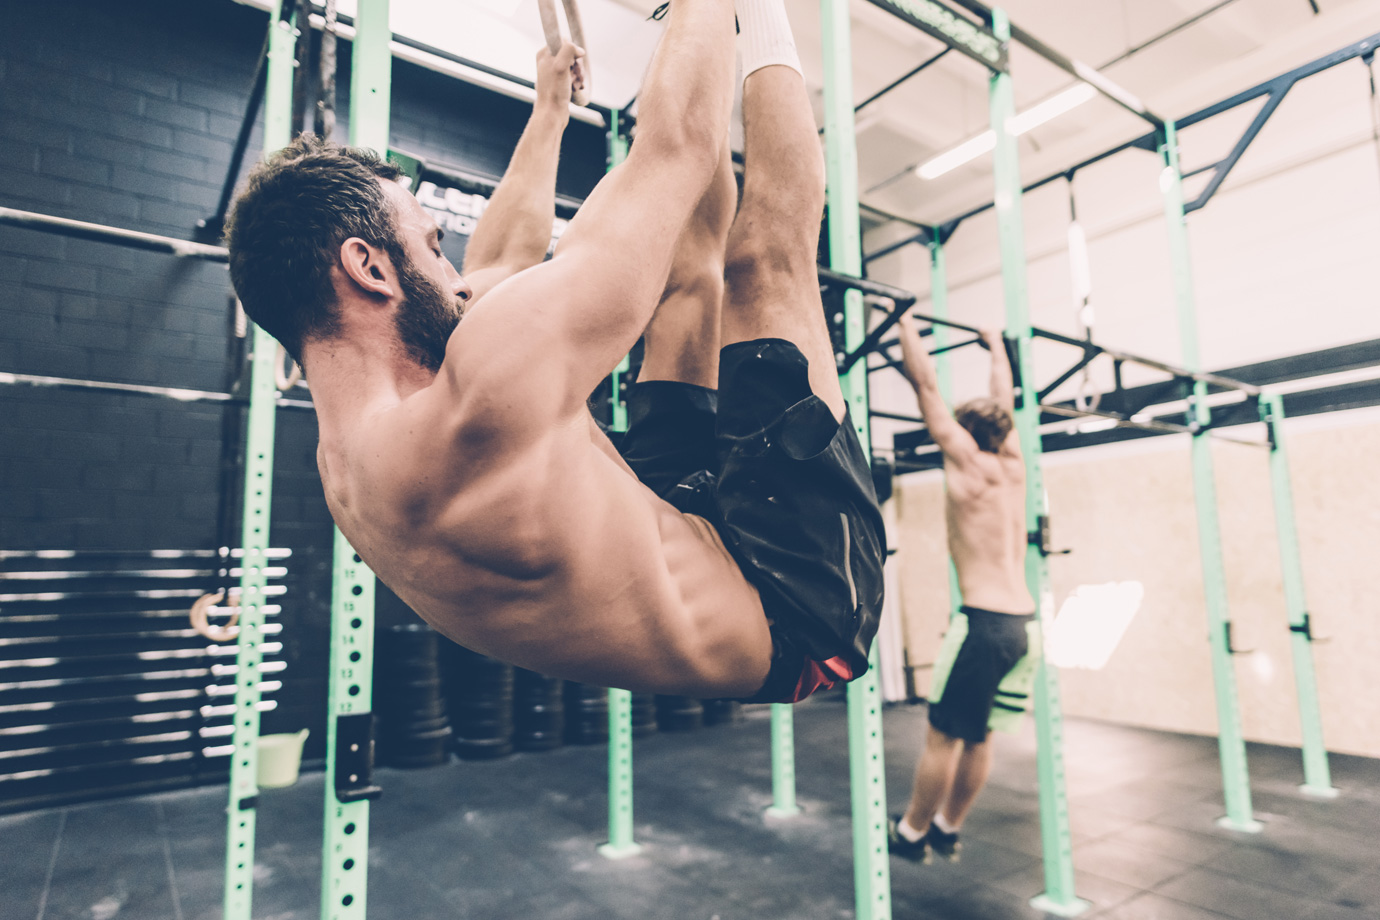 5 steps to become a pull-up pro 5 steps to become a pull-up pro new foto